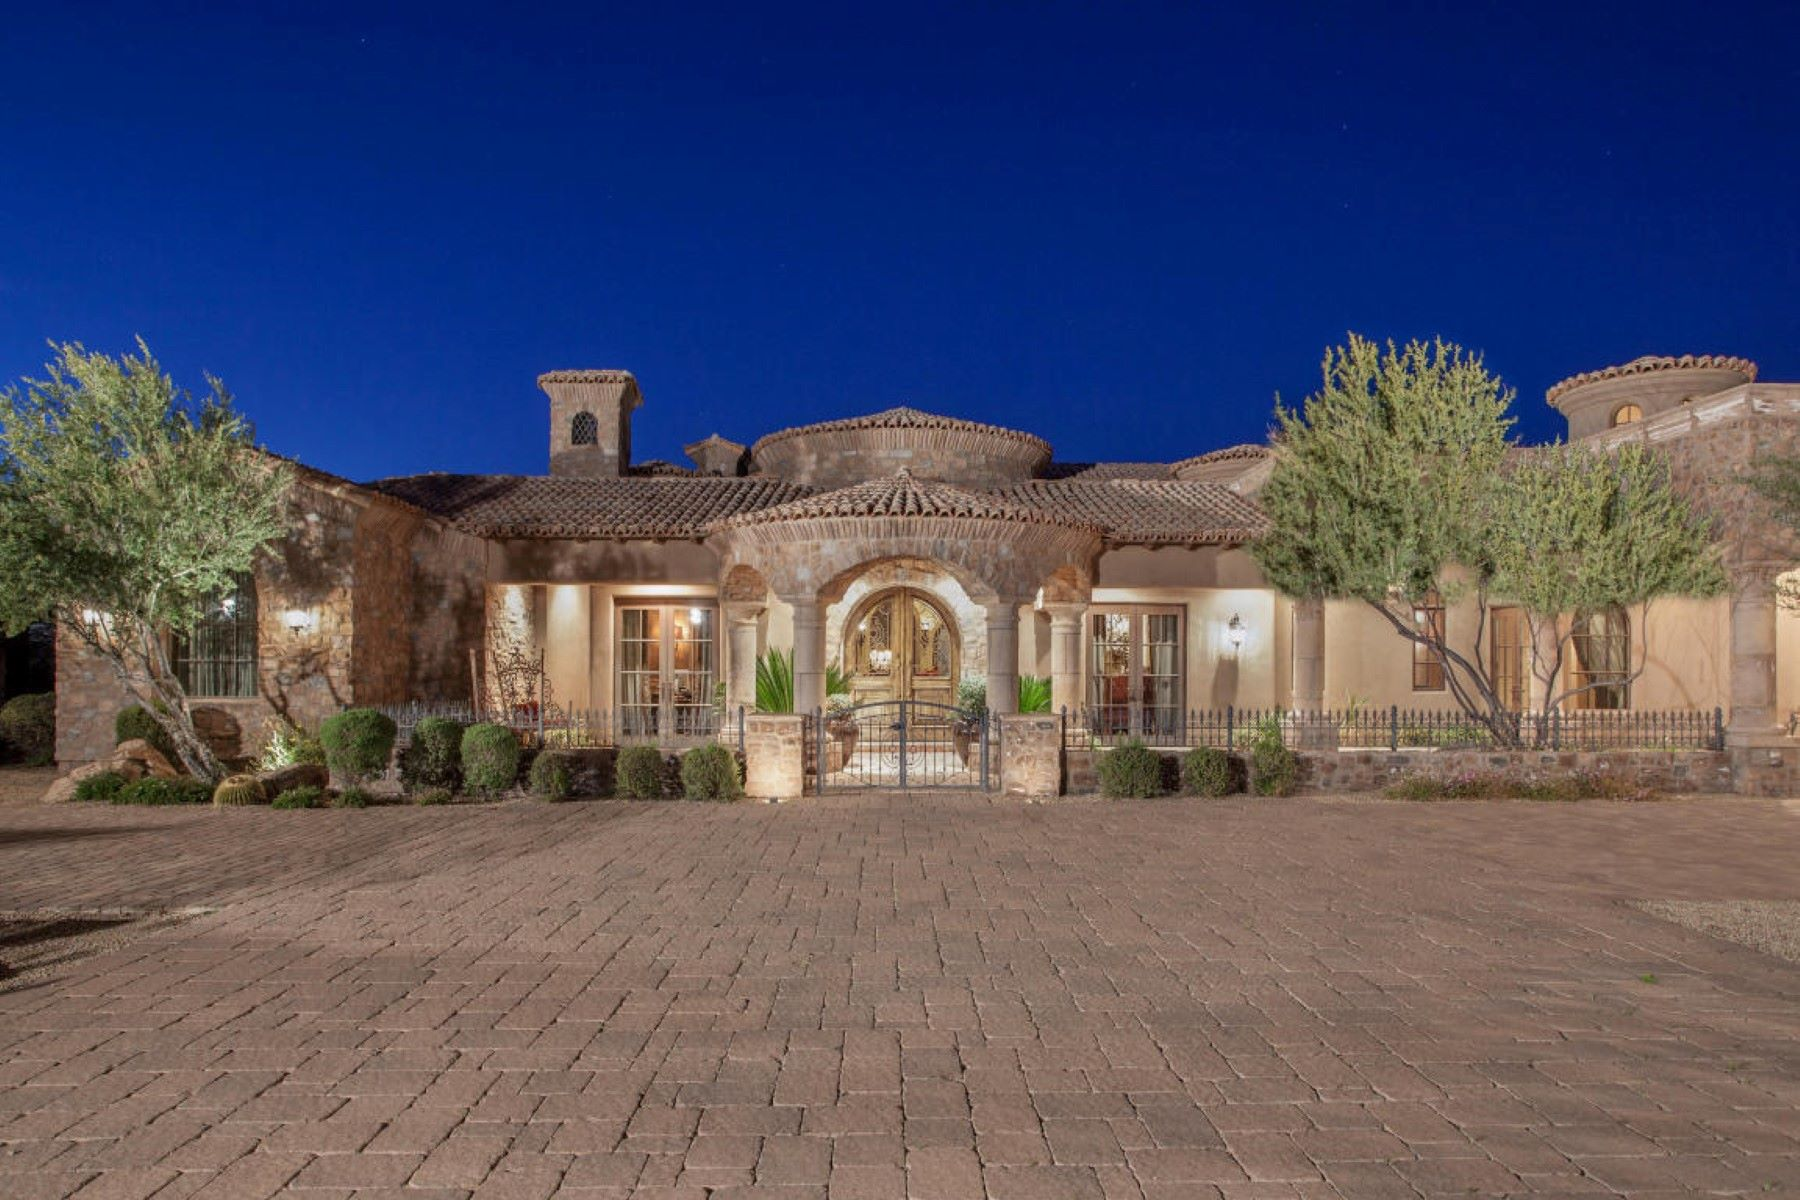 獨棟家庭住宅 為 出售 在 Incredible sprawling estate situated on acres of beautiful Sonoran Desert 8143 E Stagecoach Pass Scottsdale, 亞利桑那州, 85266 美國